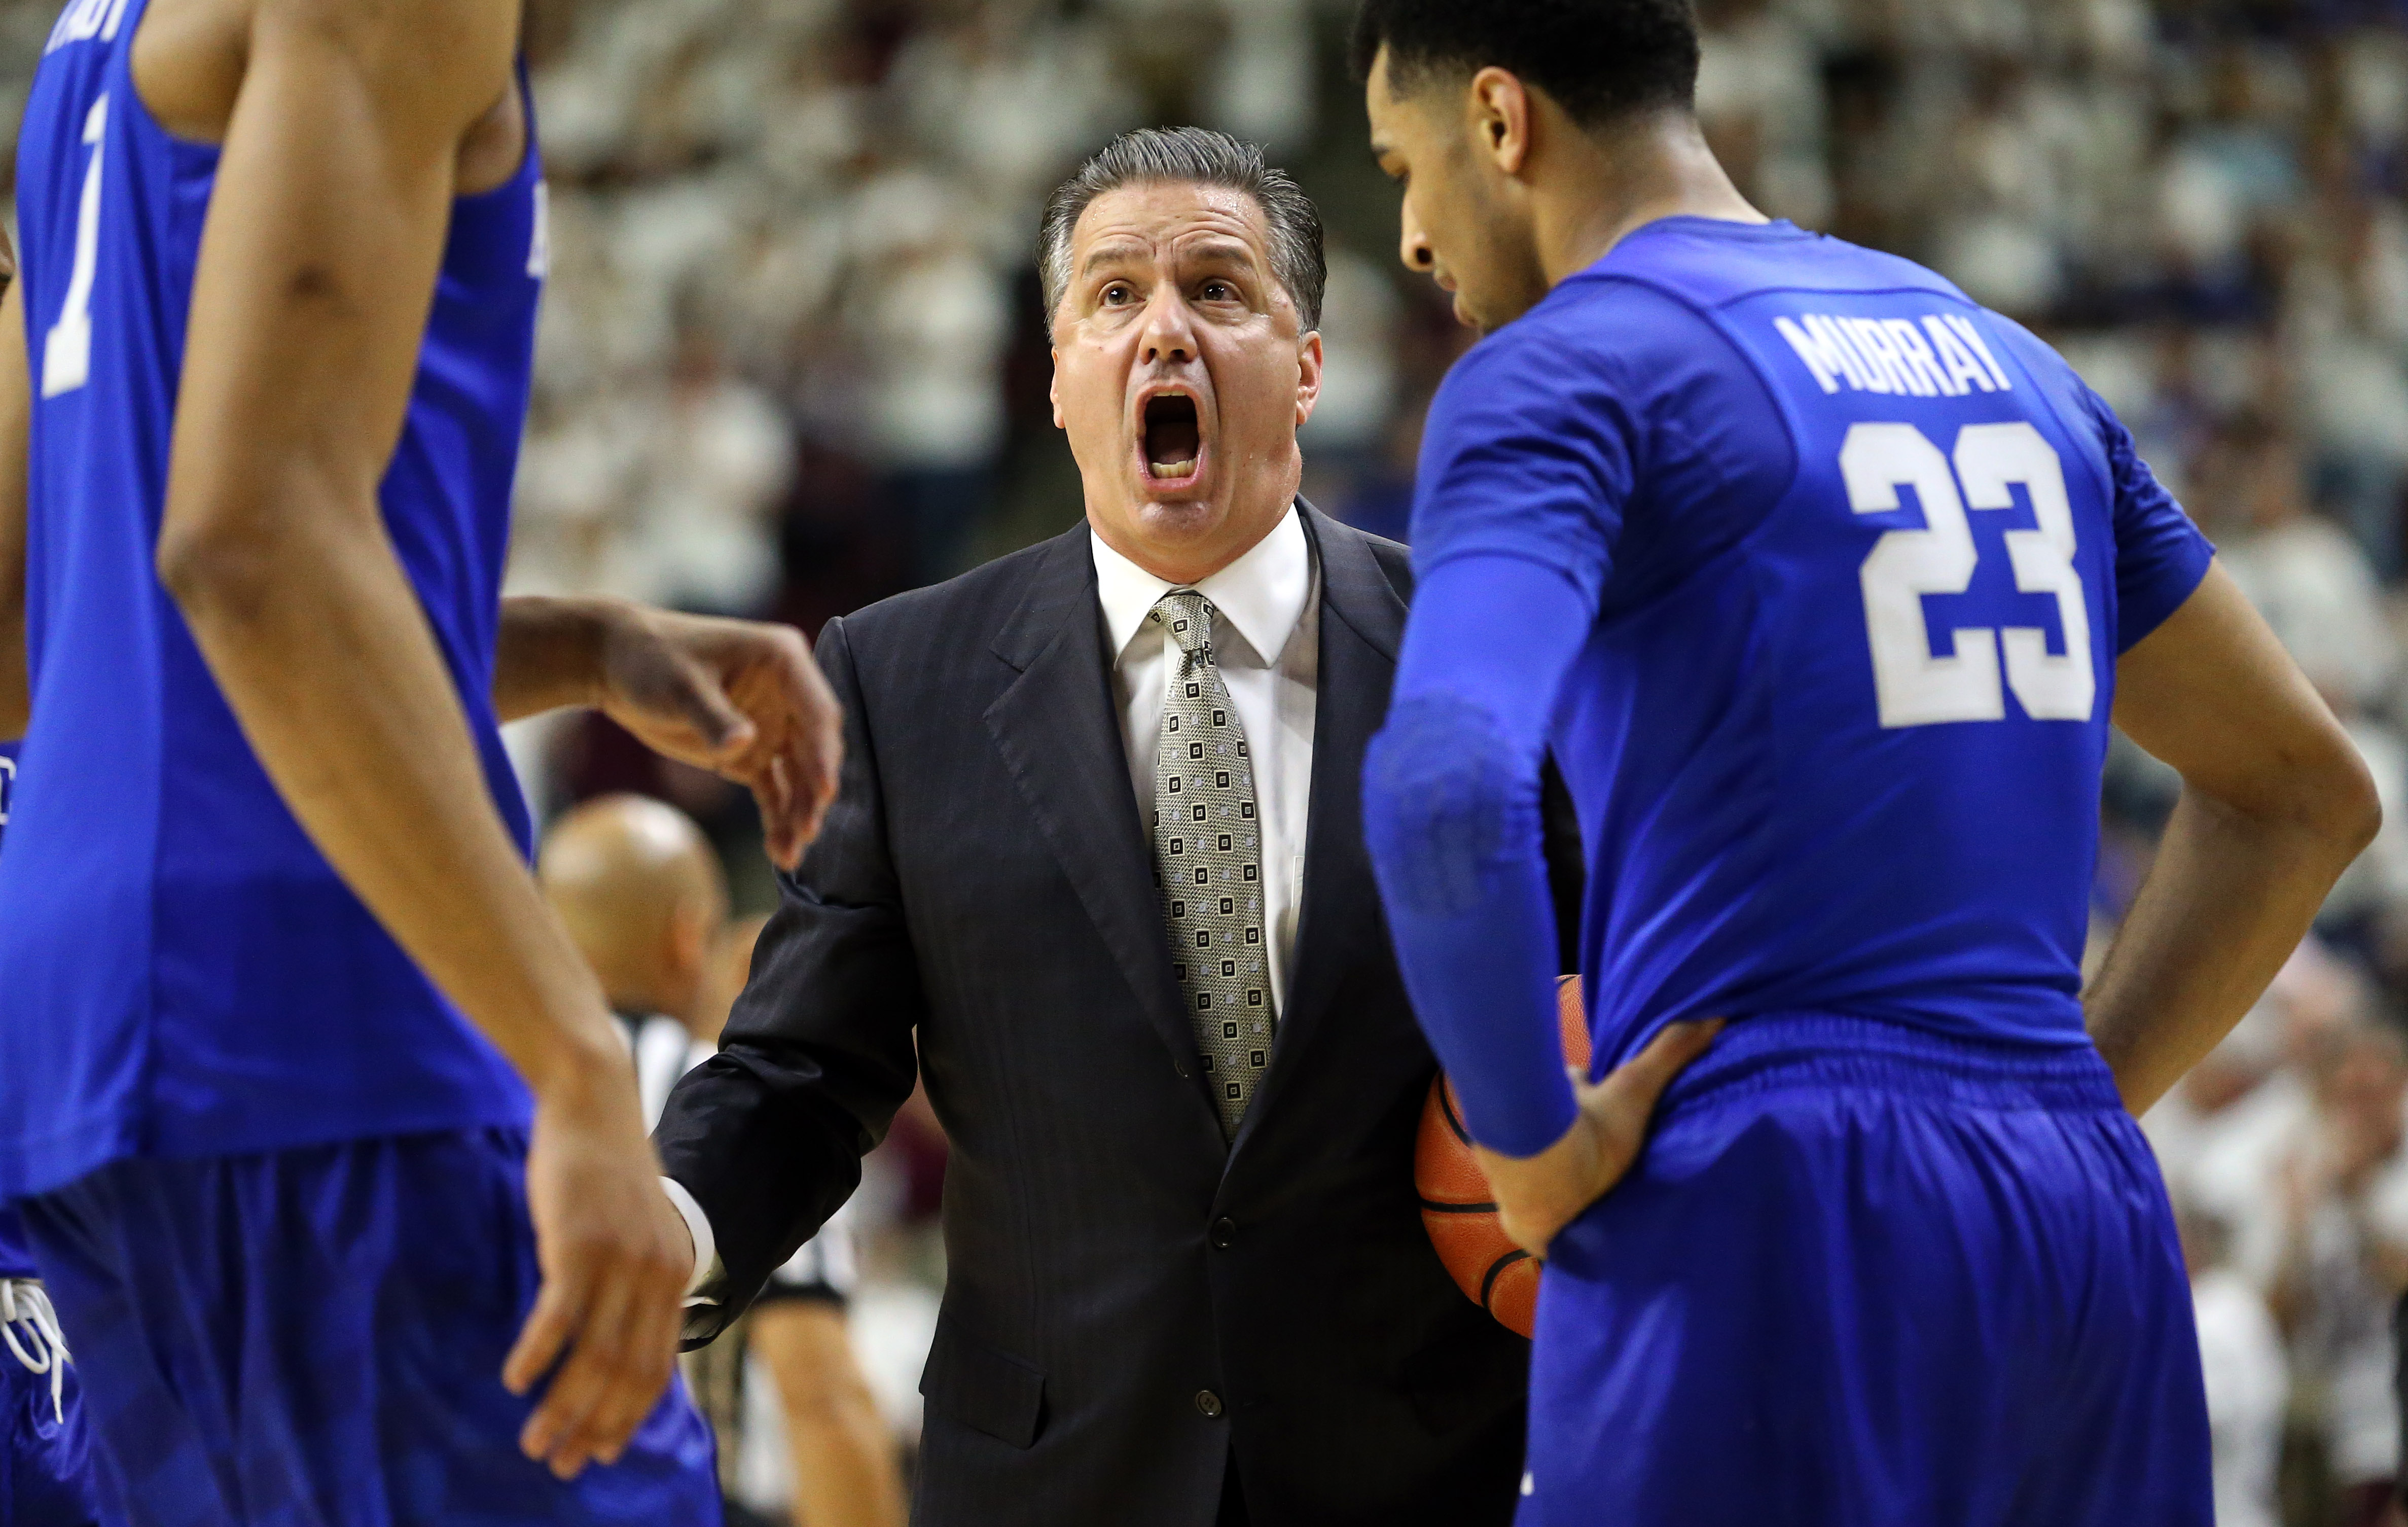 Kentucky head coach John Calipari reacts as his team comes off for a time out against Texas A&M during the first half of an NCAA college basketball game, Saturday, Feb. 20, 2016, in College Station, Texas. (AP Photo/Sam Craft)